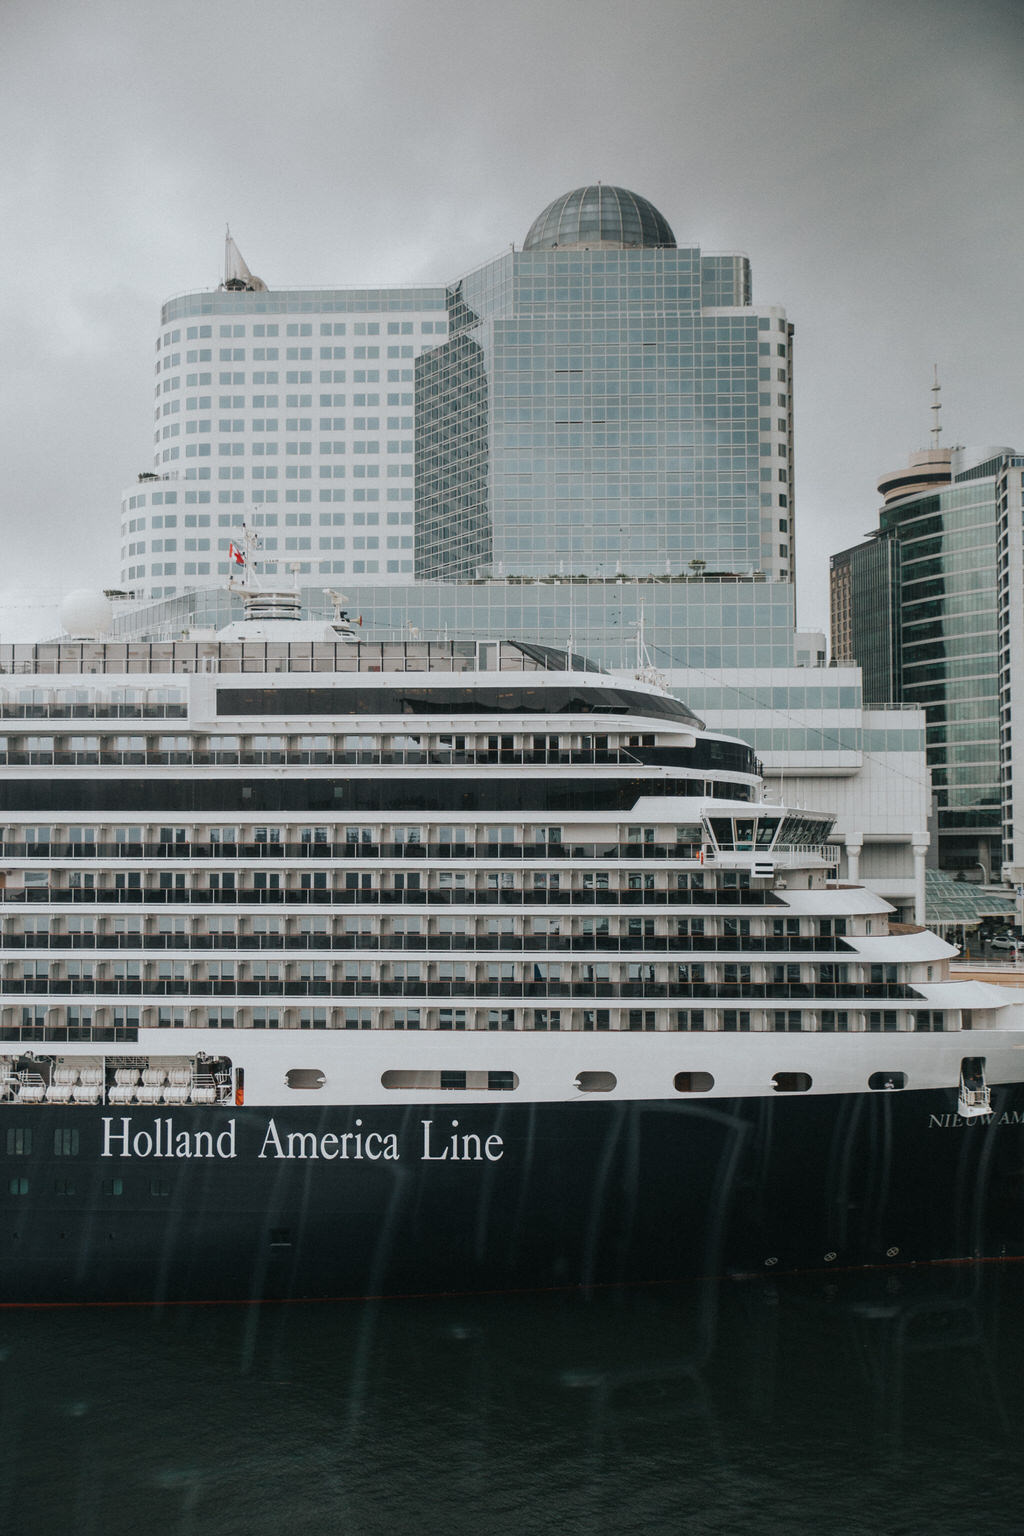 Holland America Cruise Ship from Vancouver Convention Centre